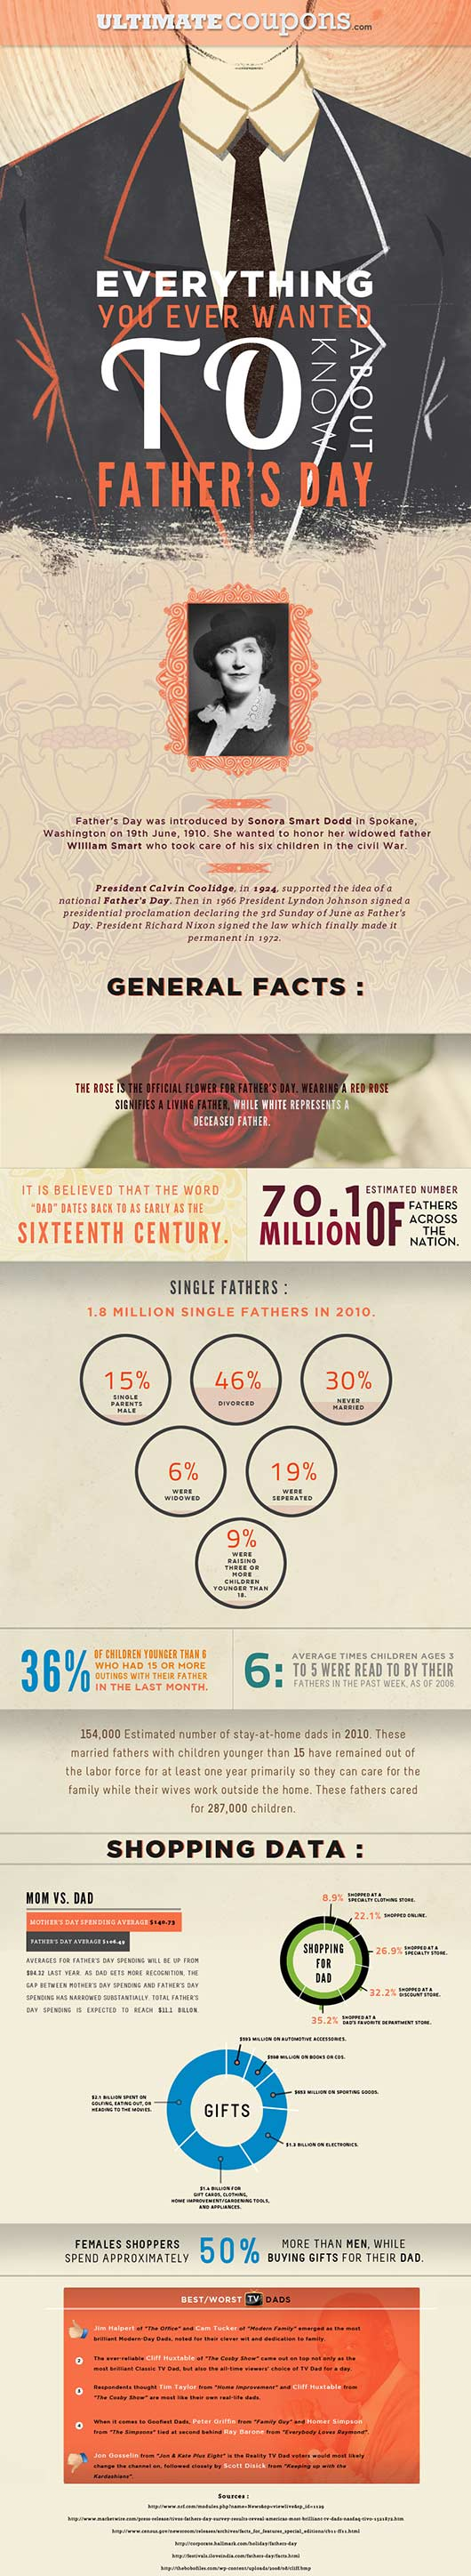 Everything-You-Ever-Wanted-to-Know-About-Father's-Day-INFO